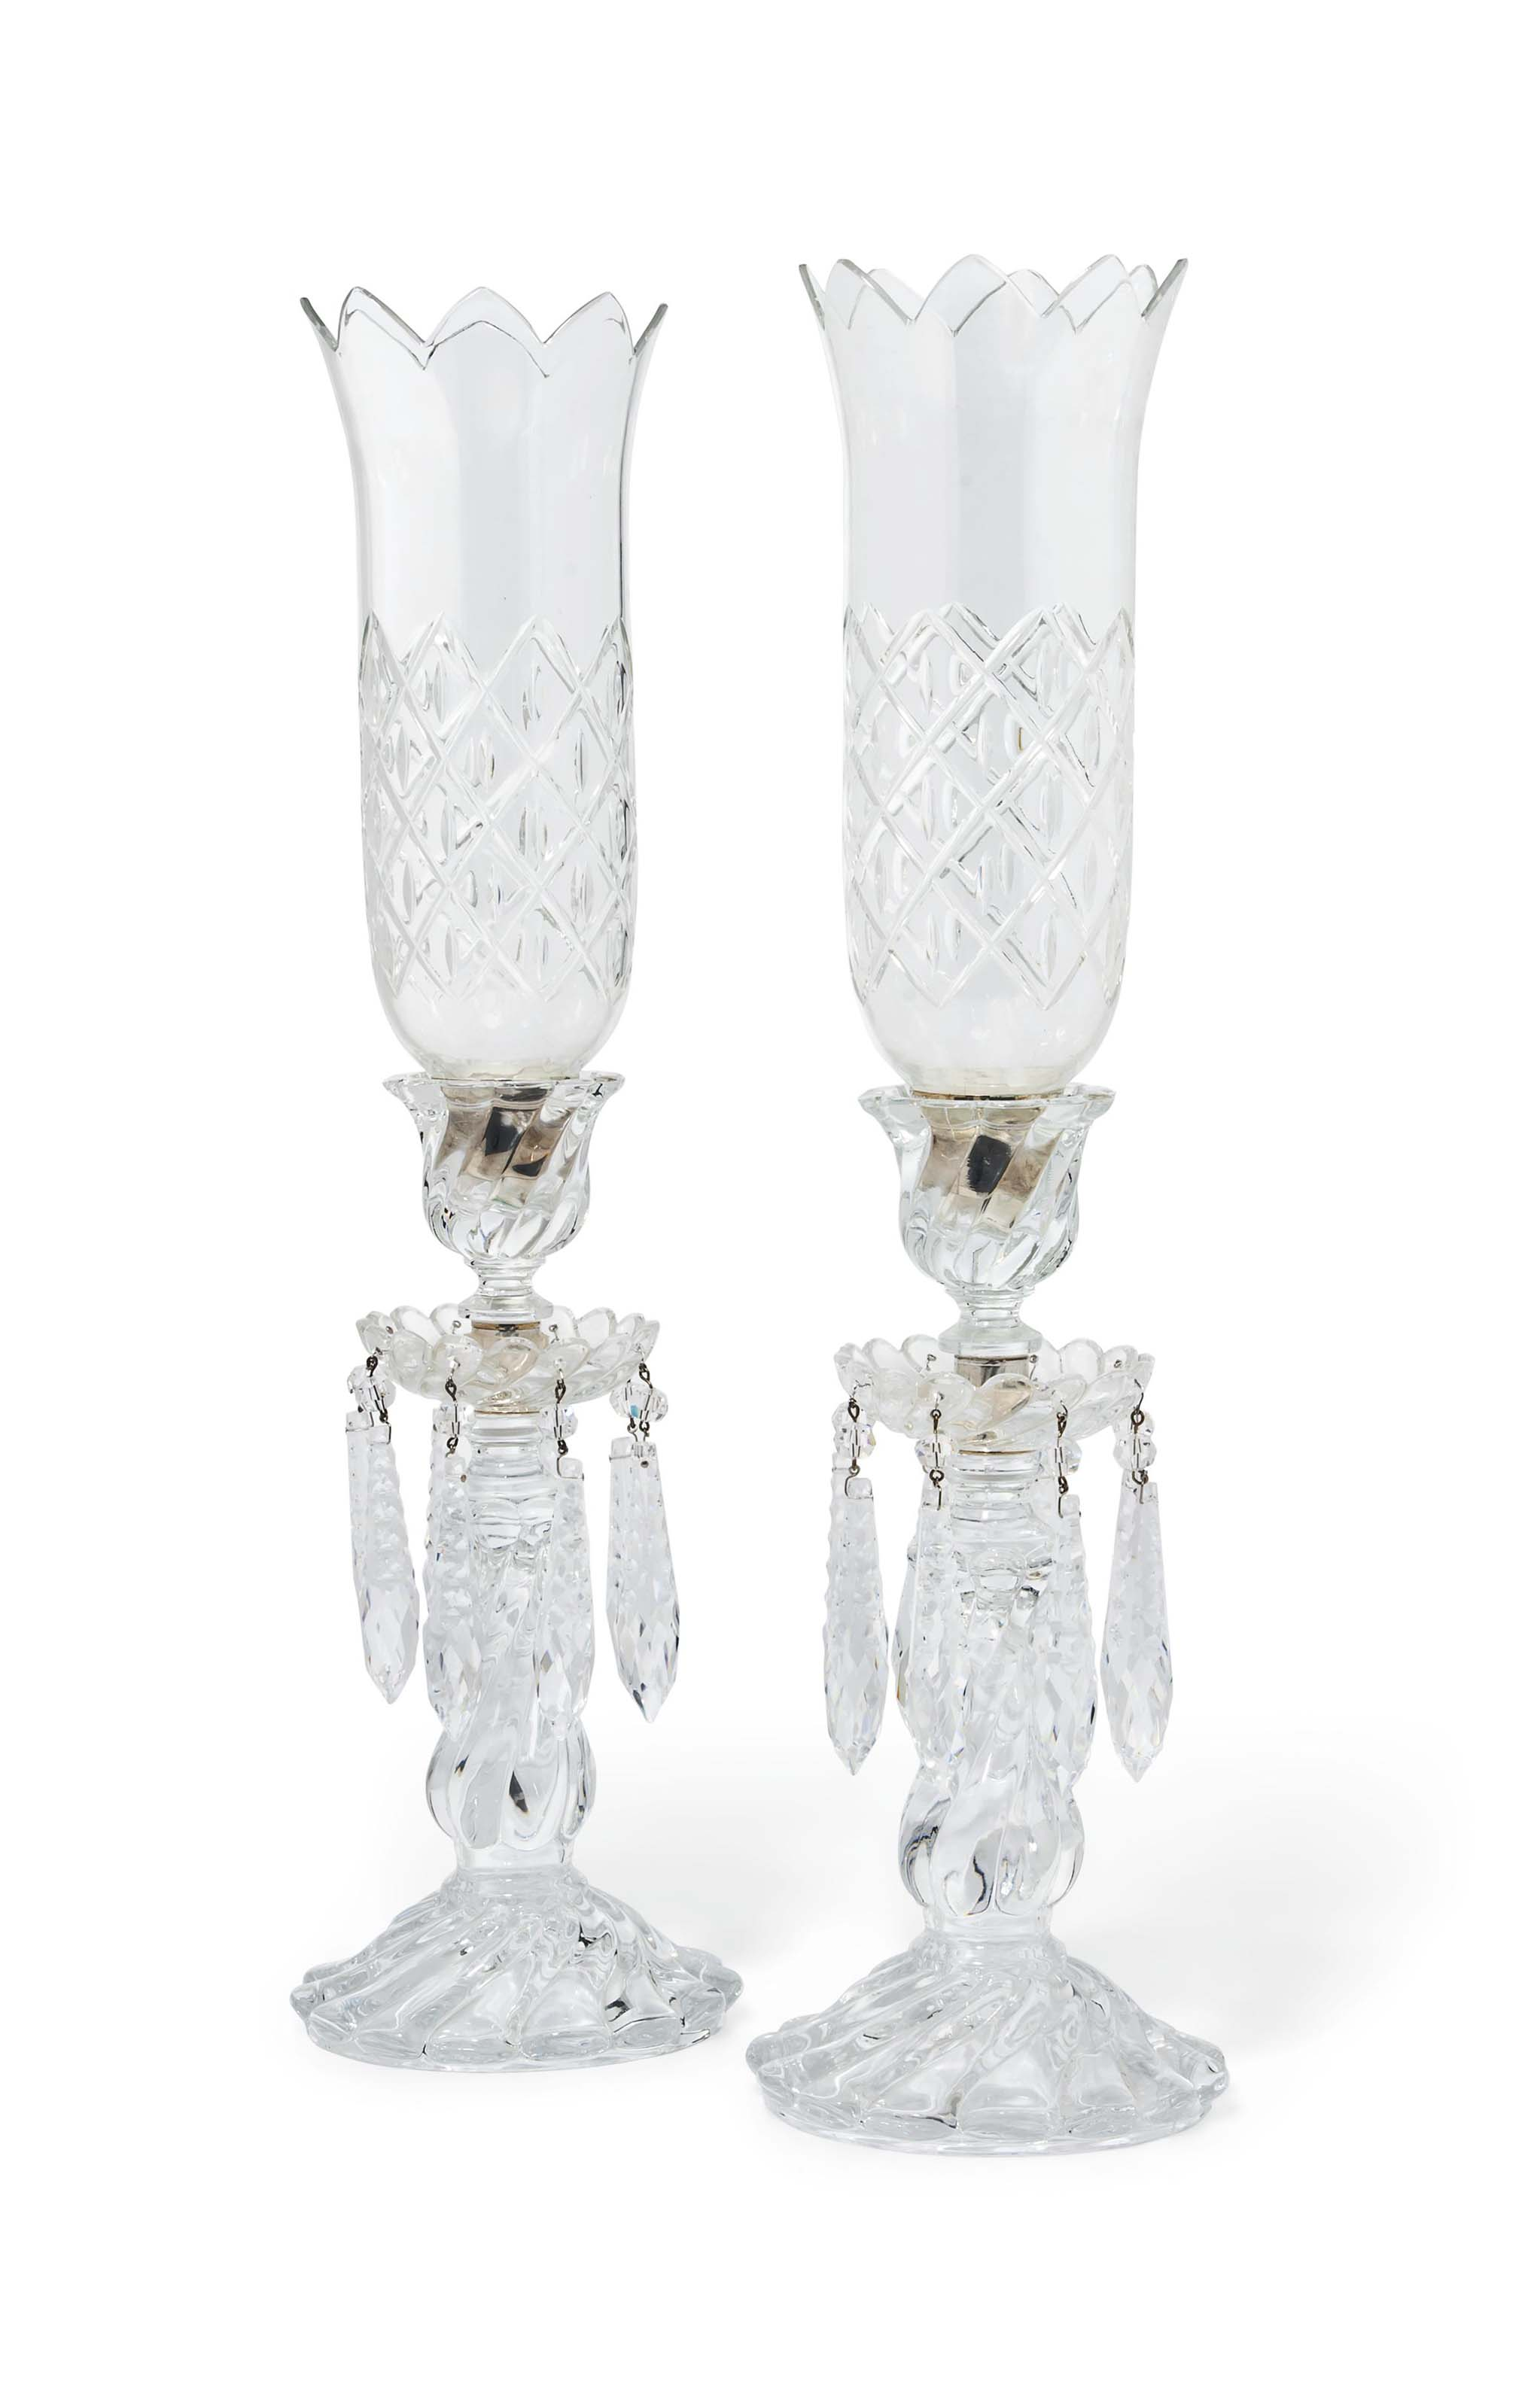 A PAIR OF BACCARAT MOULDED GLA